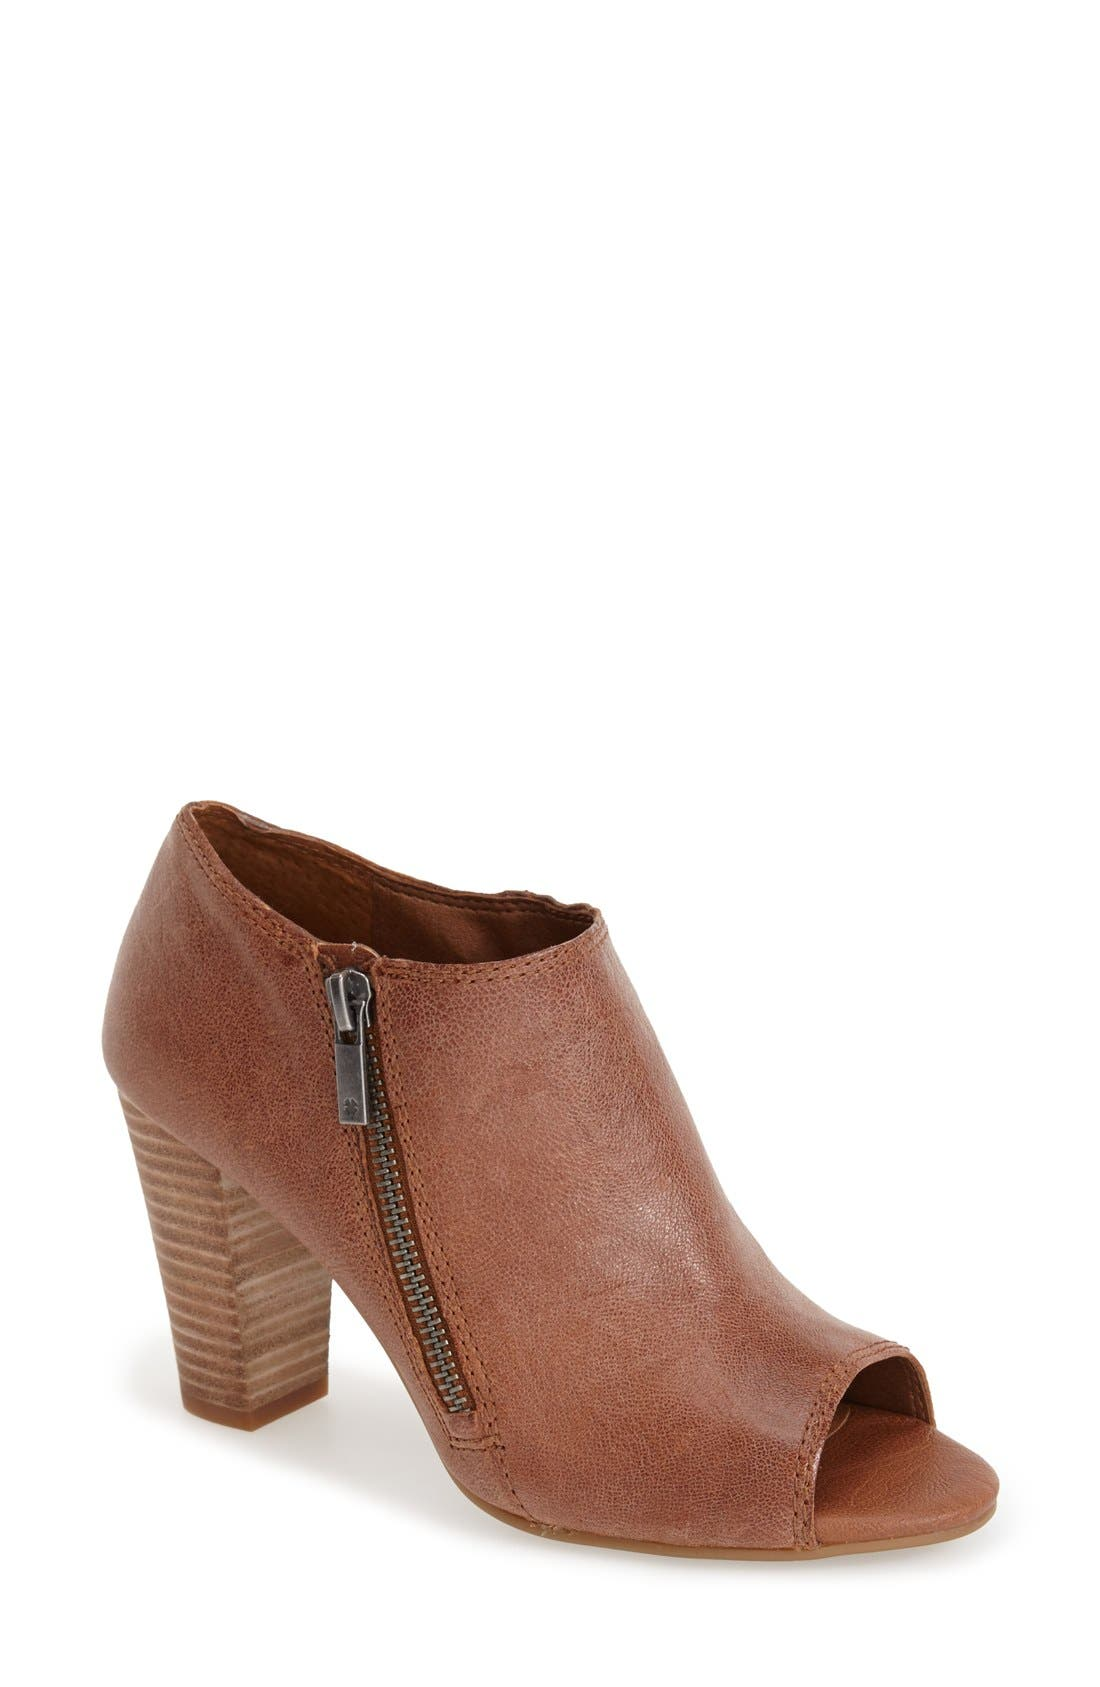 Alternate Image 1 Selected - Lucky Brand 'Pabla' Open Toe Bootie (Women)